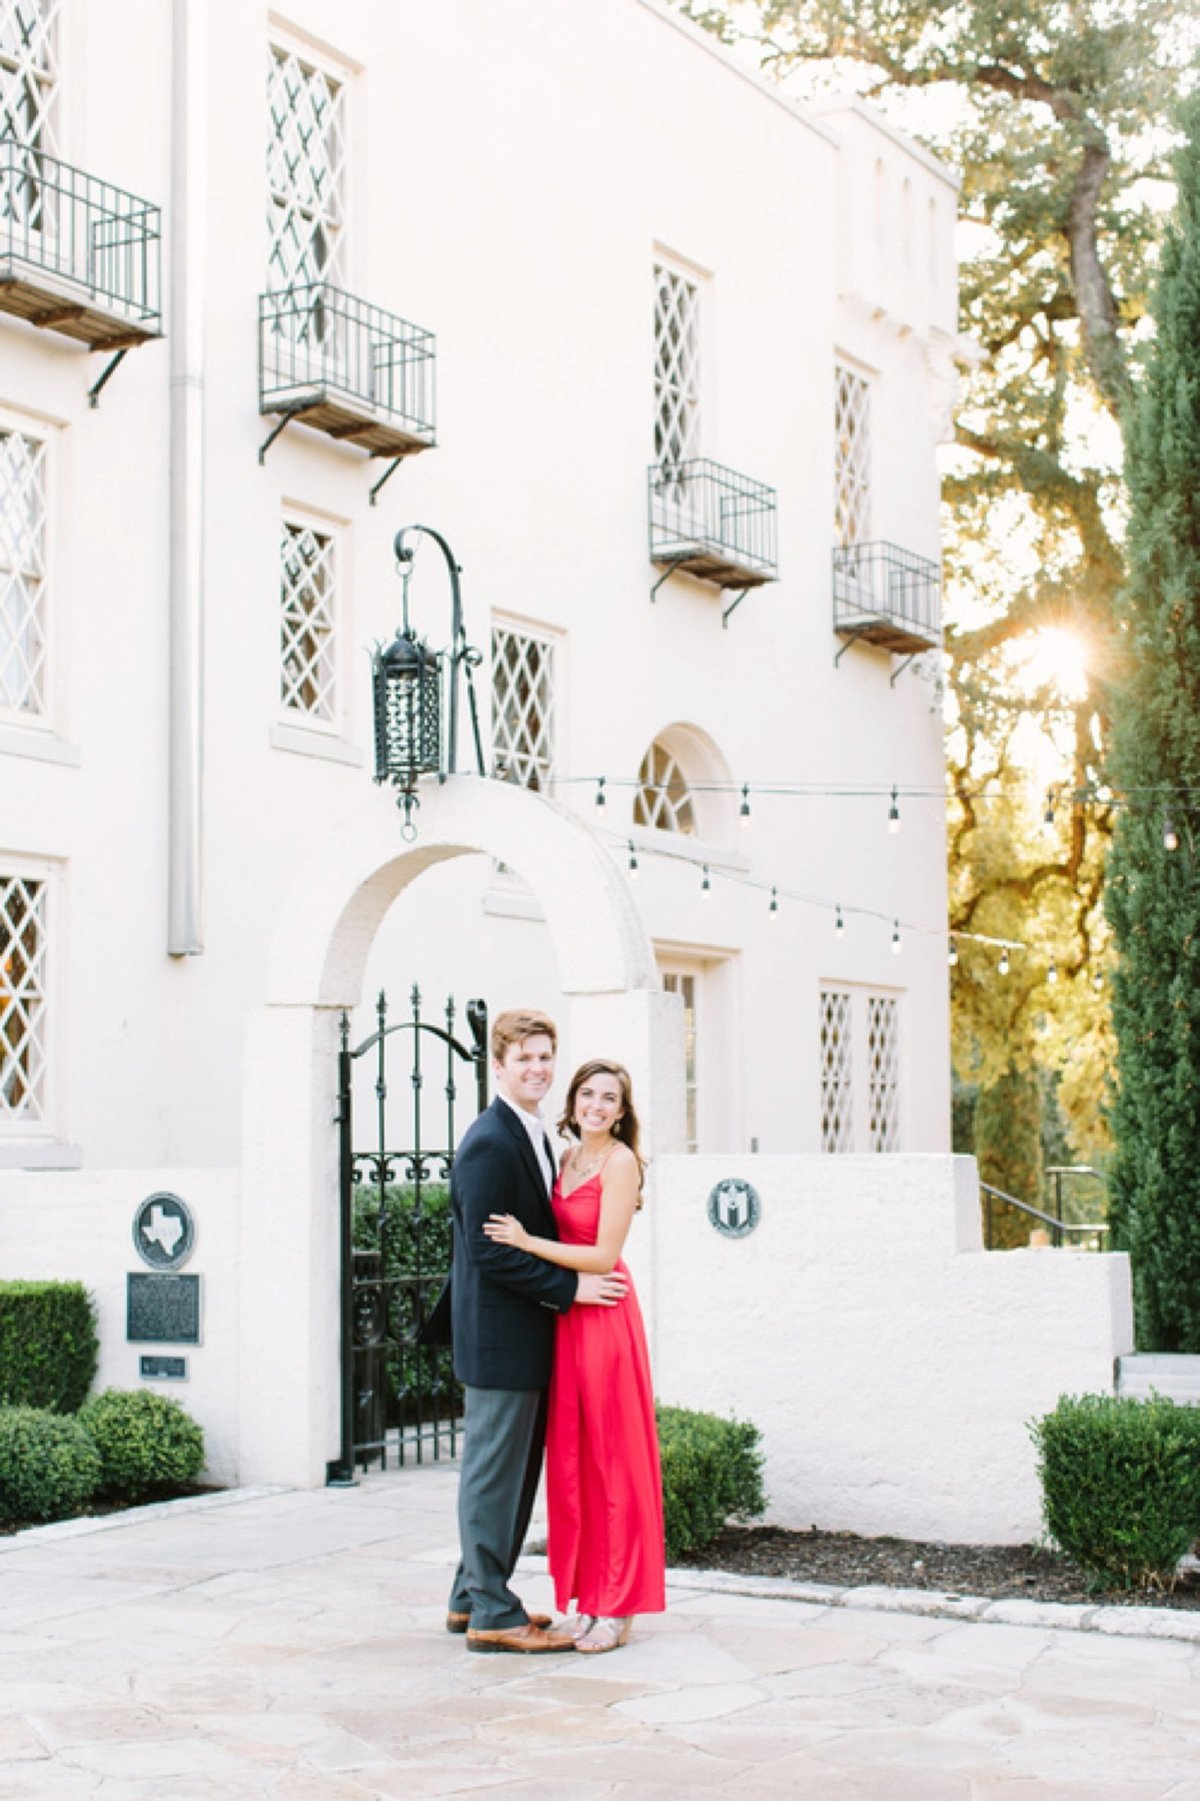 Georgia South Carolina Destination Wedding Photographer_0017